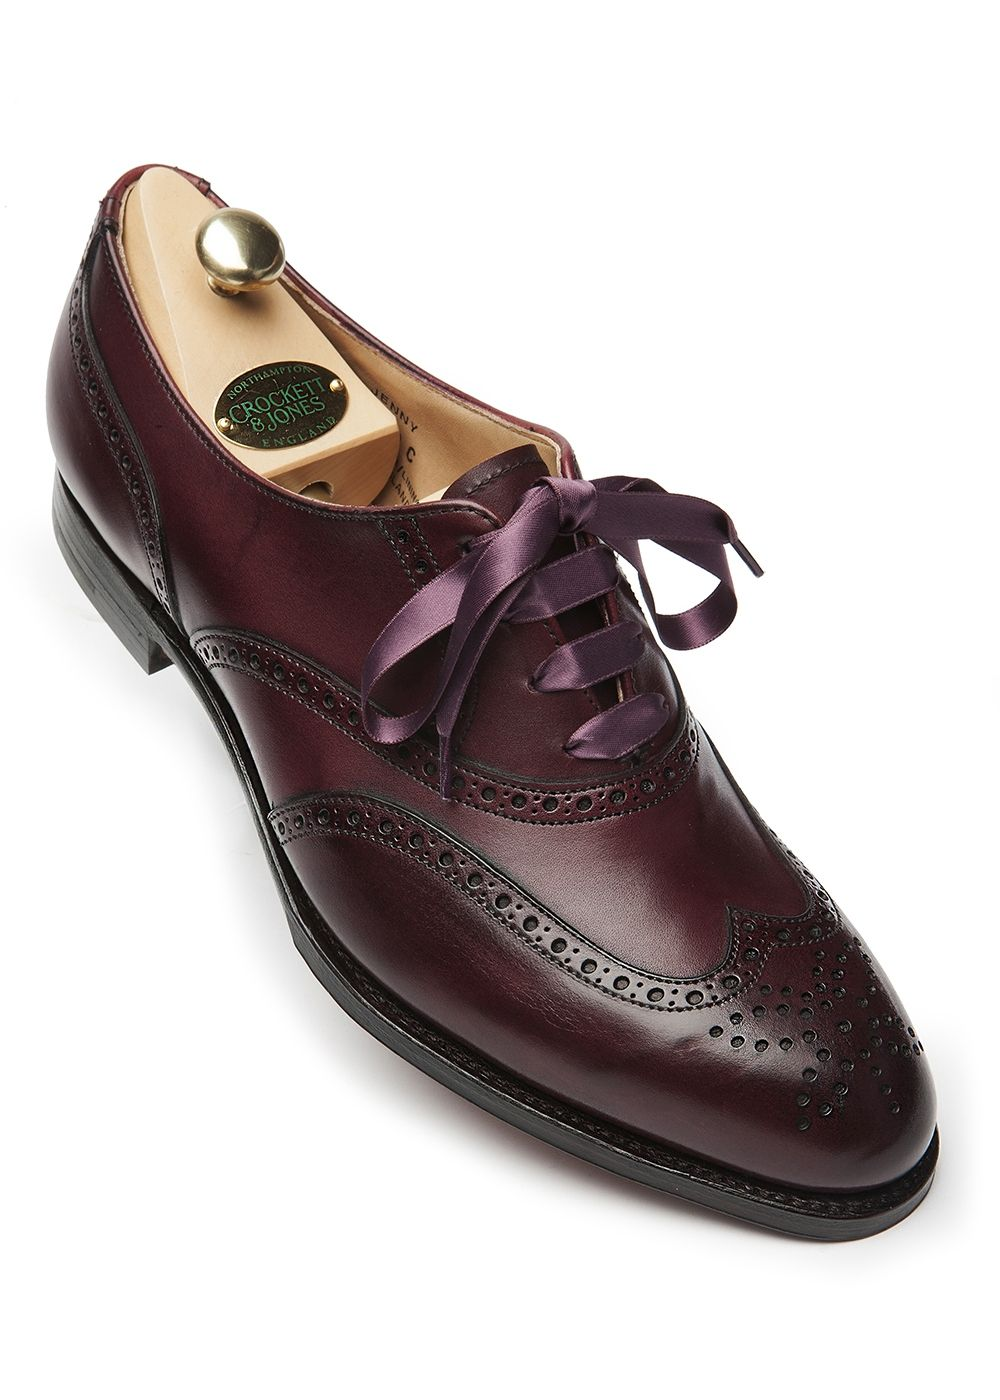 The Crockett & Jones Jenny Burgundy ladies shoe available on the Burlington  arcade http:/